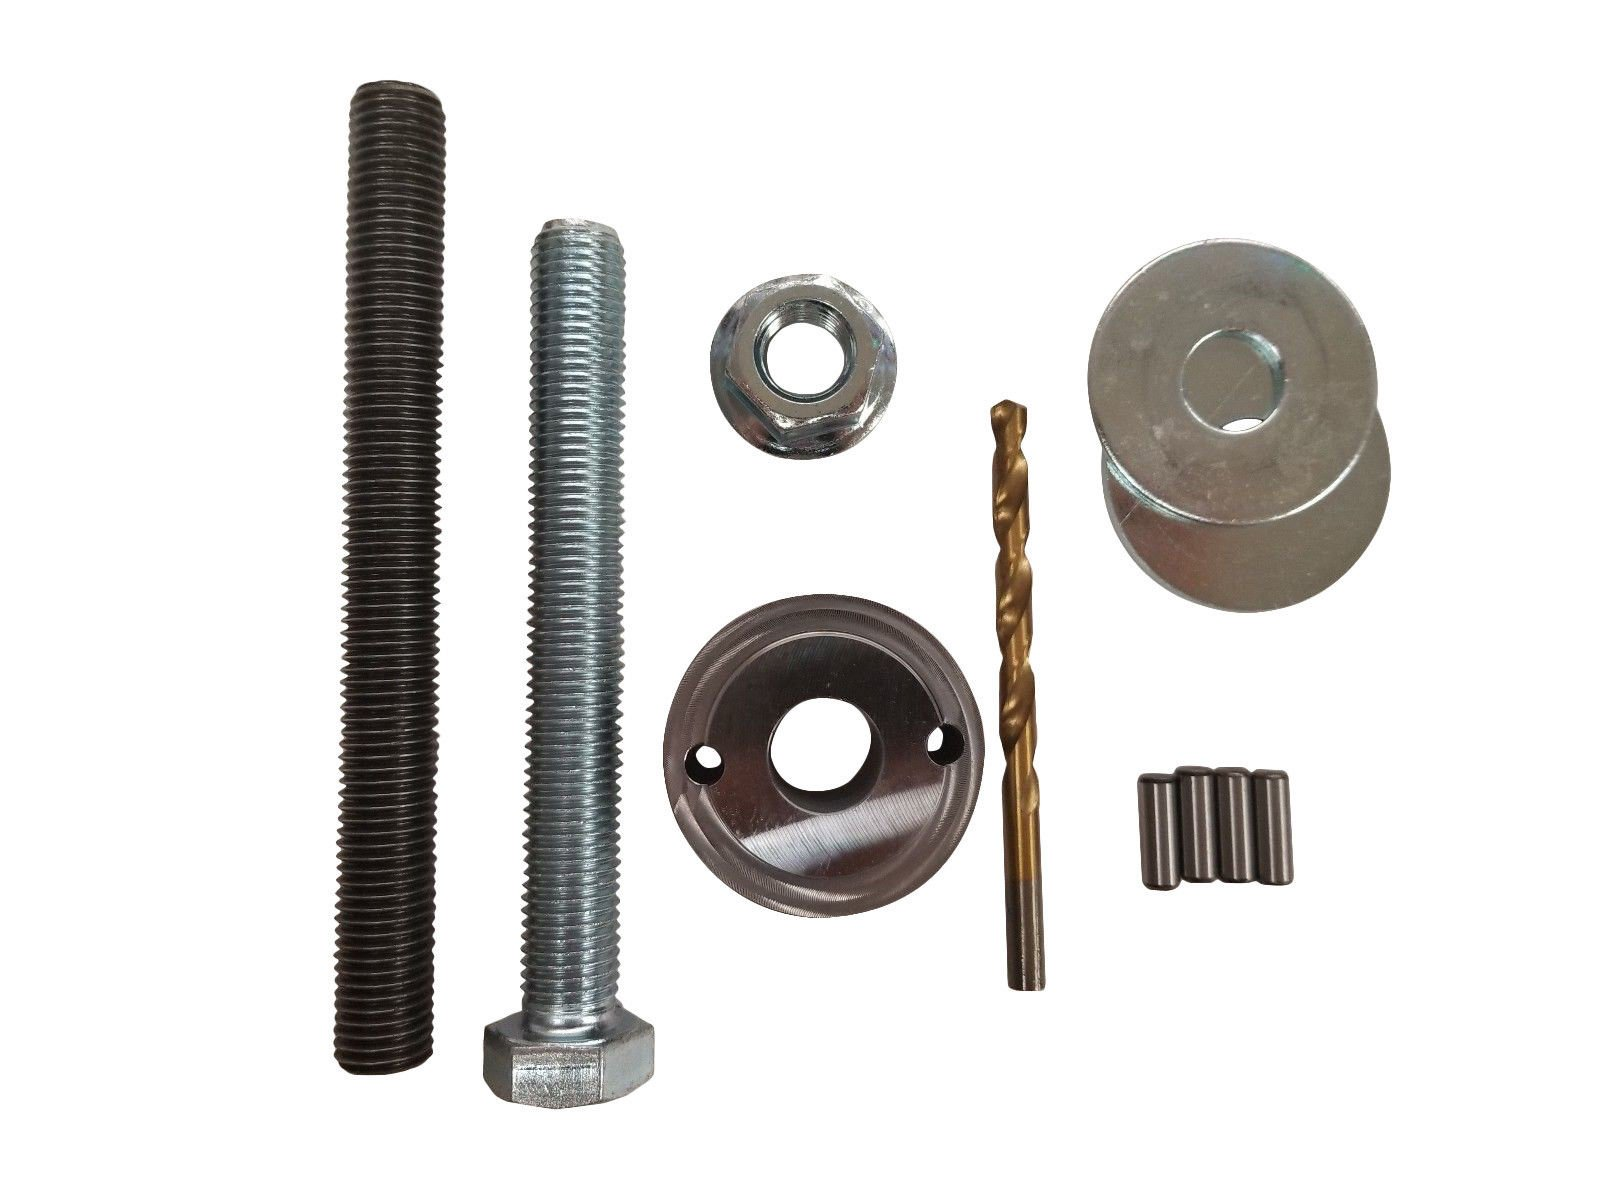 LS Crank Pin Kit with Pulley Installer